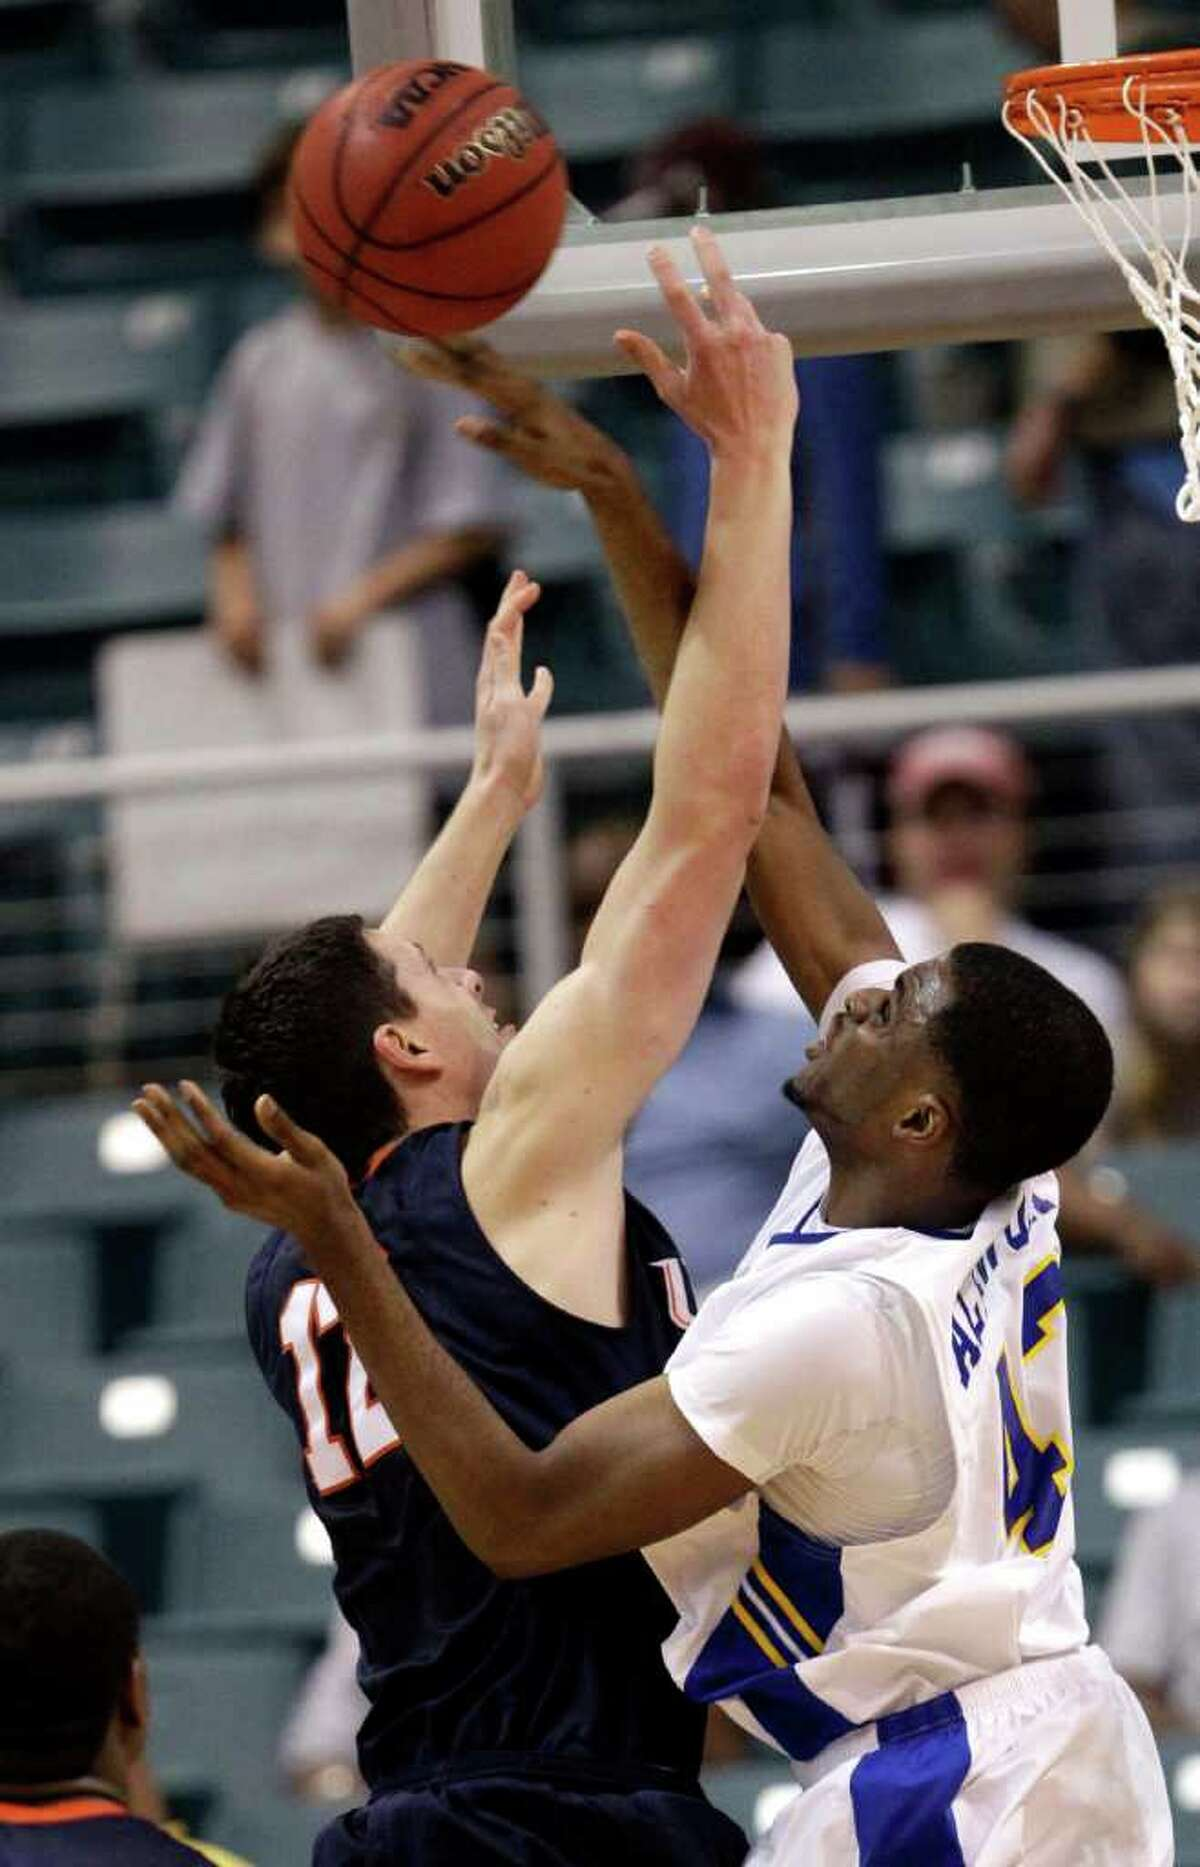 UTSA's Jeromie Hill has his shot blocked by McNeese State's P.J. Alawoya during the first half of the Southland Conference tournament championship on Saturday, March 12, 2011, in Katy. UTSA won 75-72.